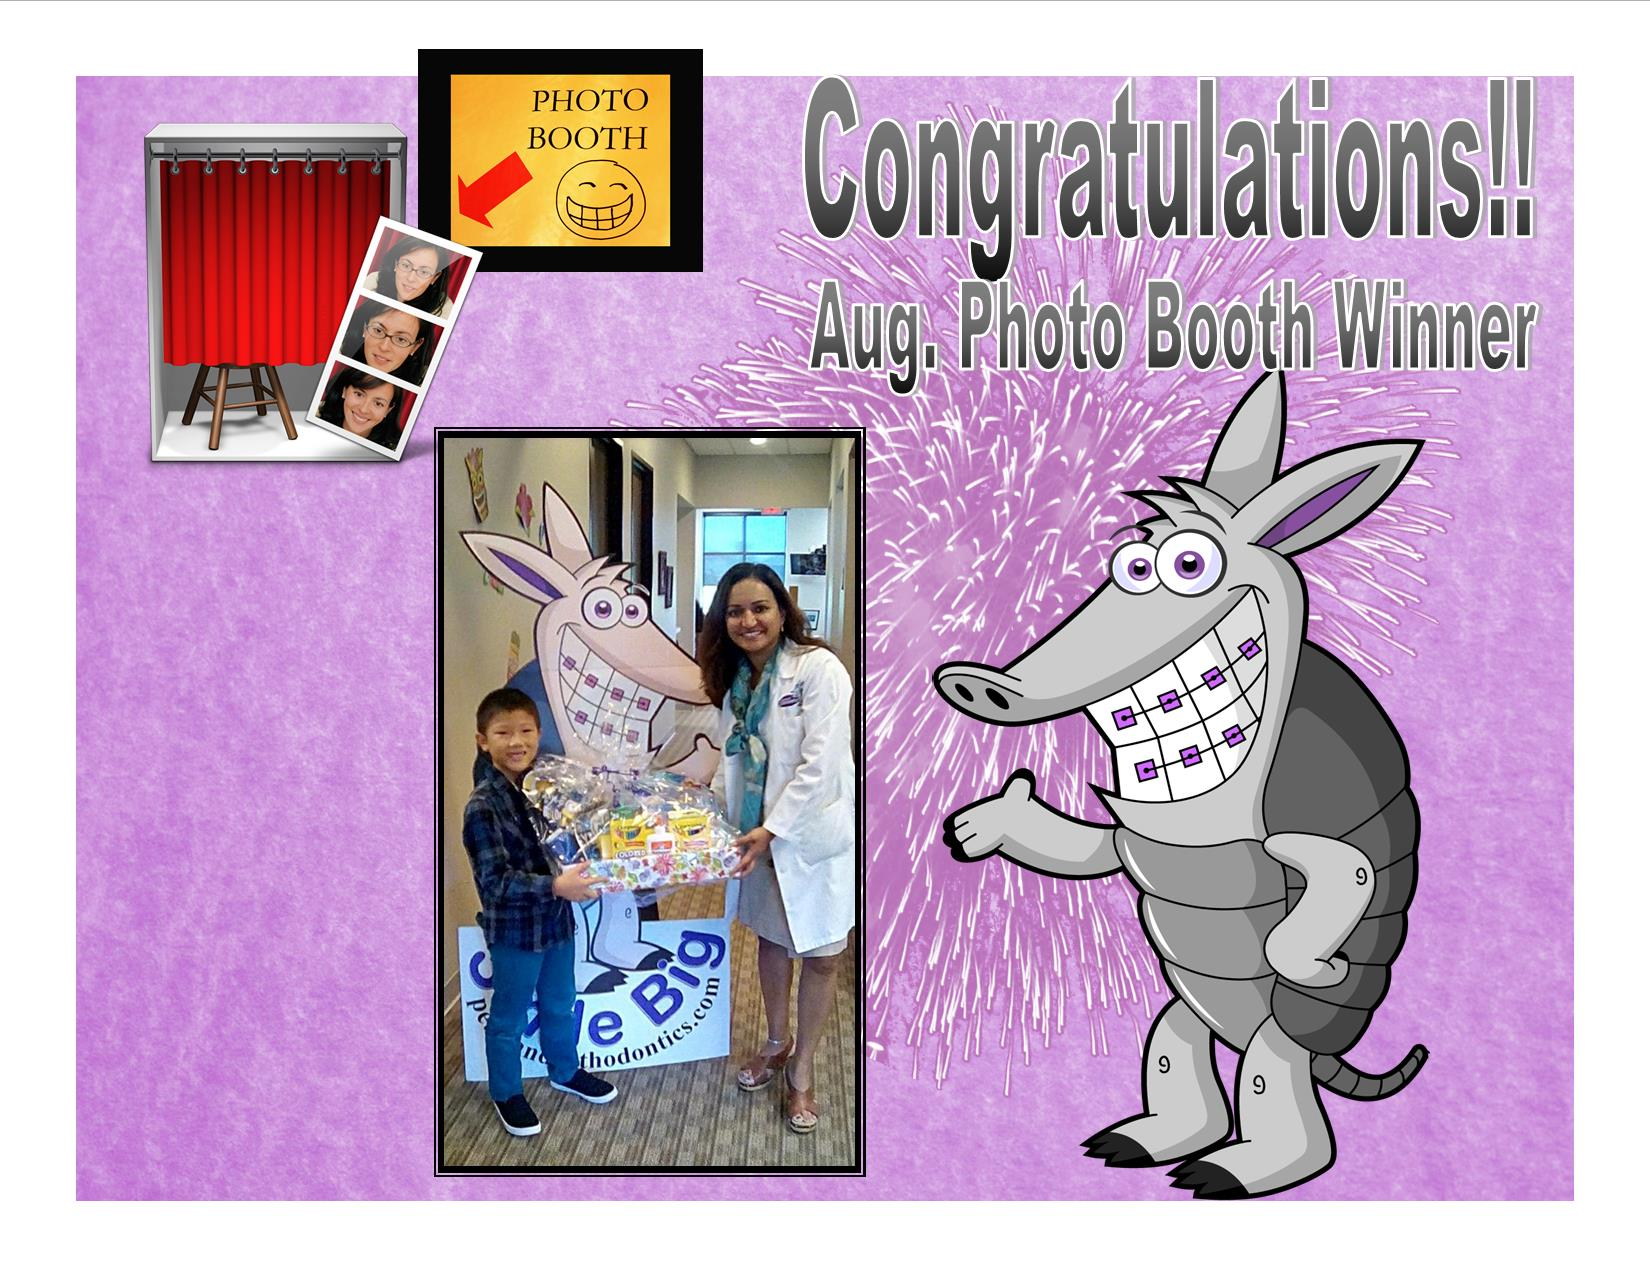 aug photo booth winner 2017